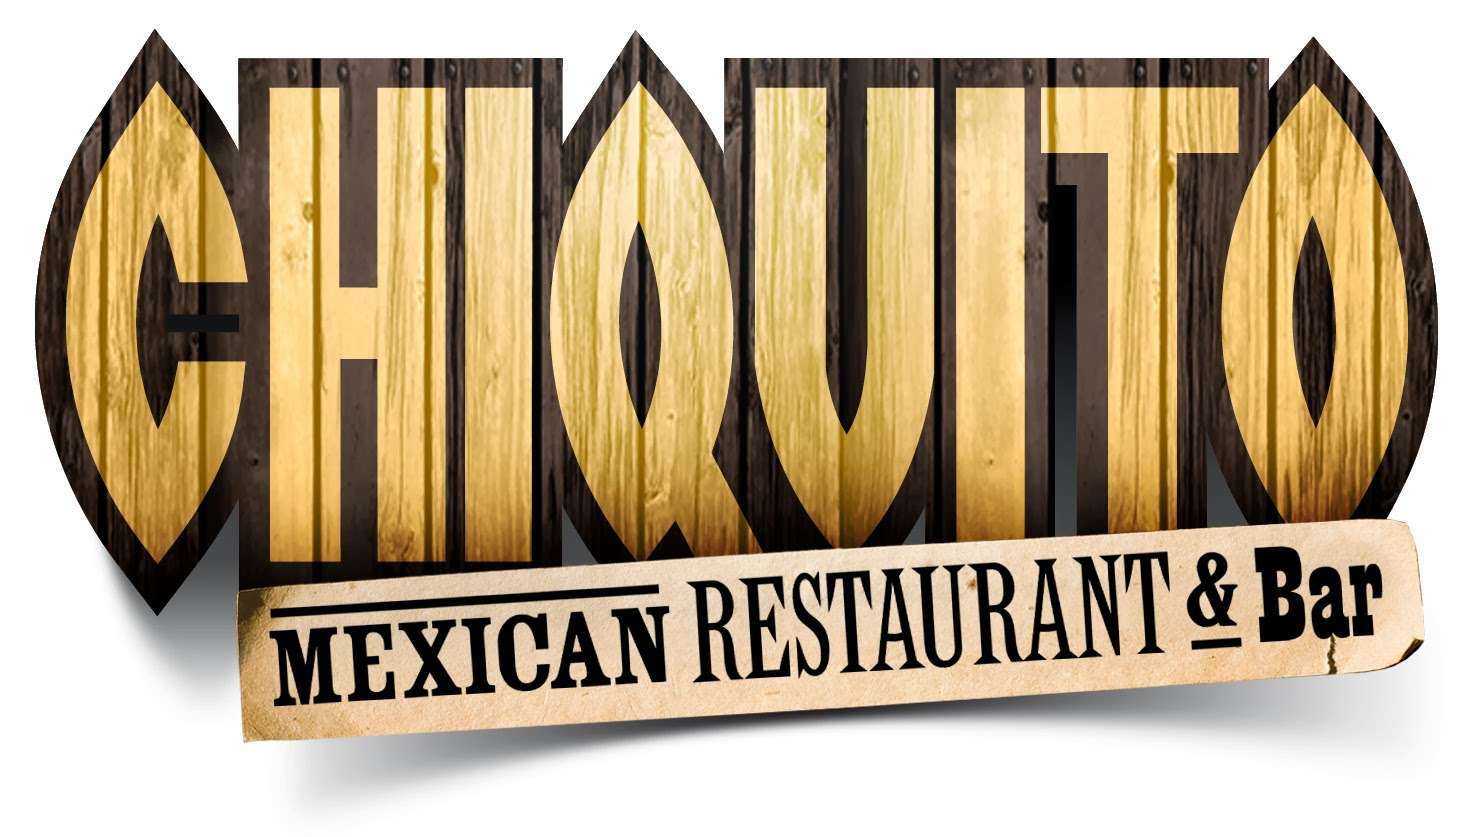 Chiquitos - Mexi-can Self Install